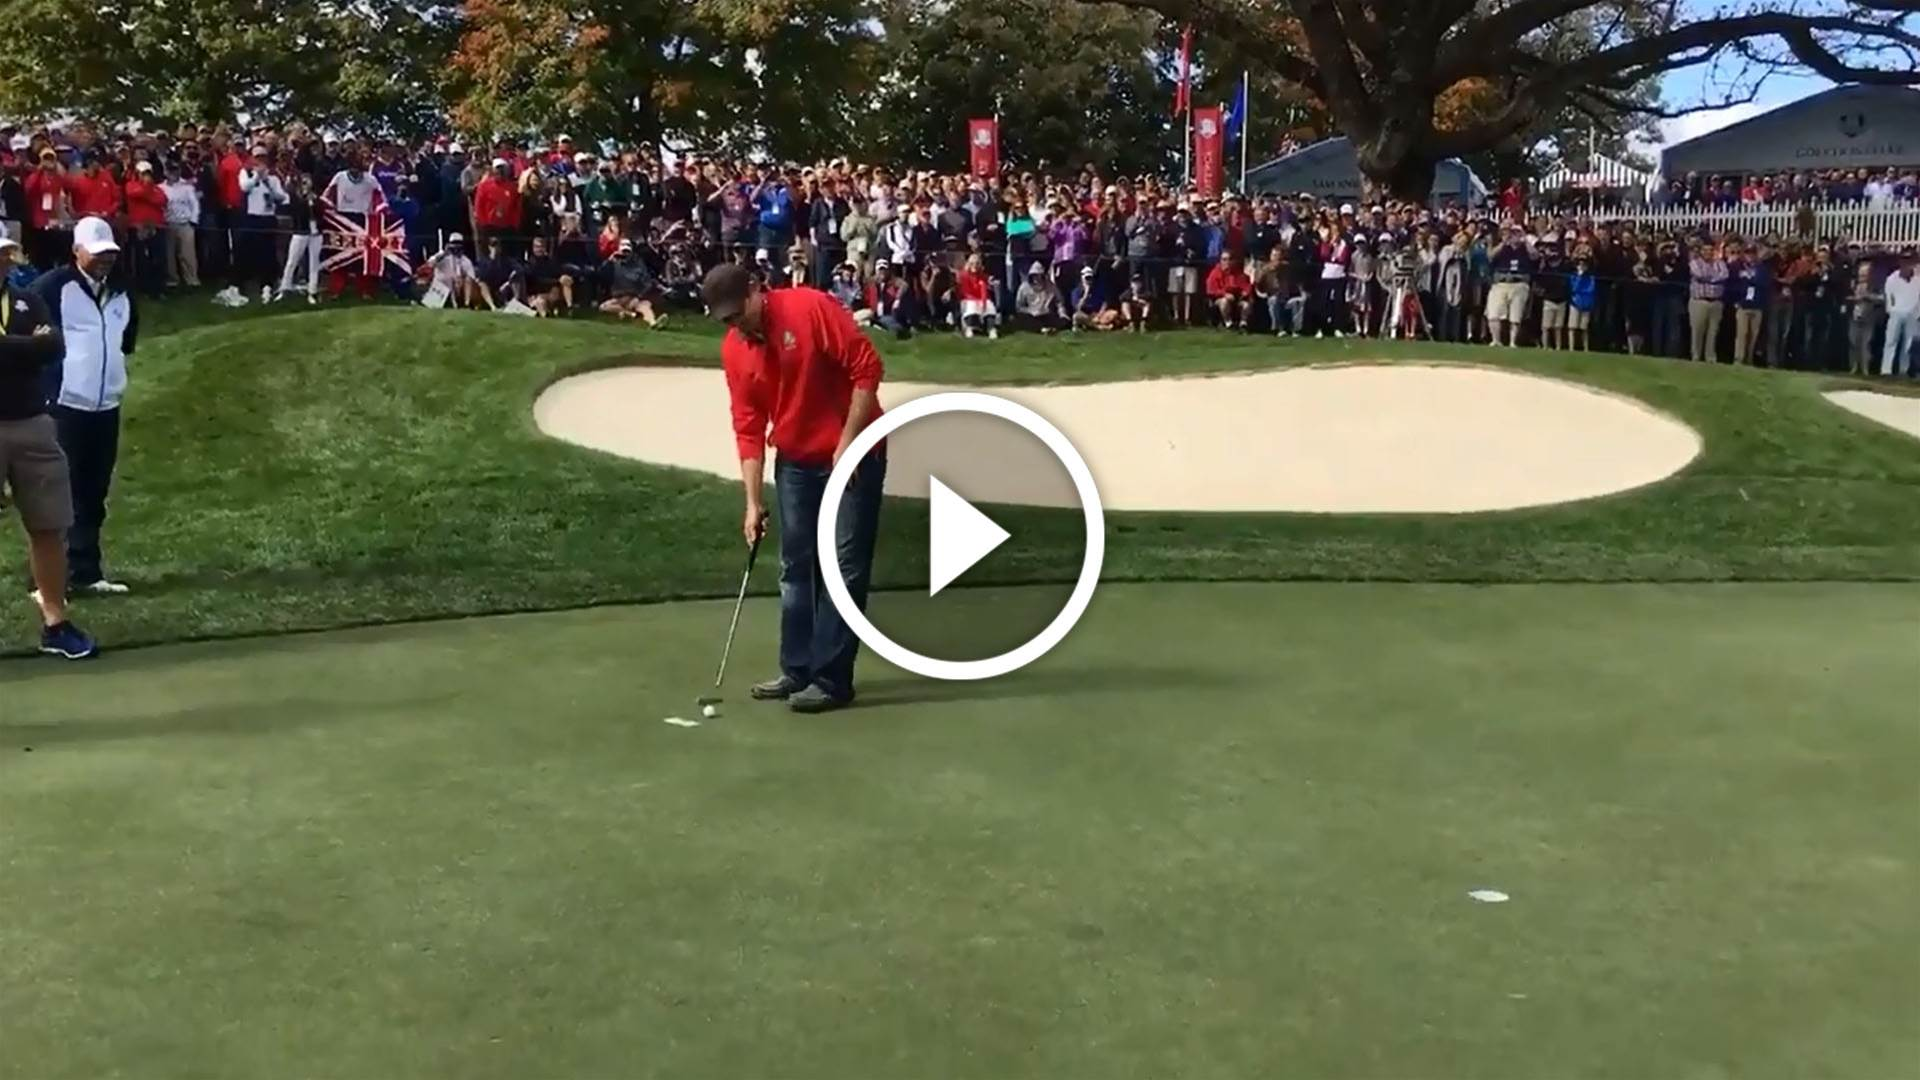 Heckler trumps McIlroy at Ryder Cup